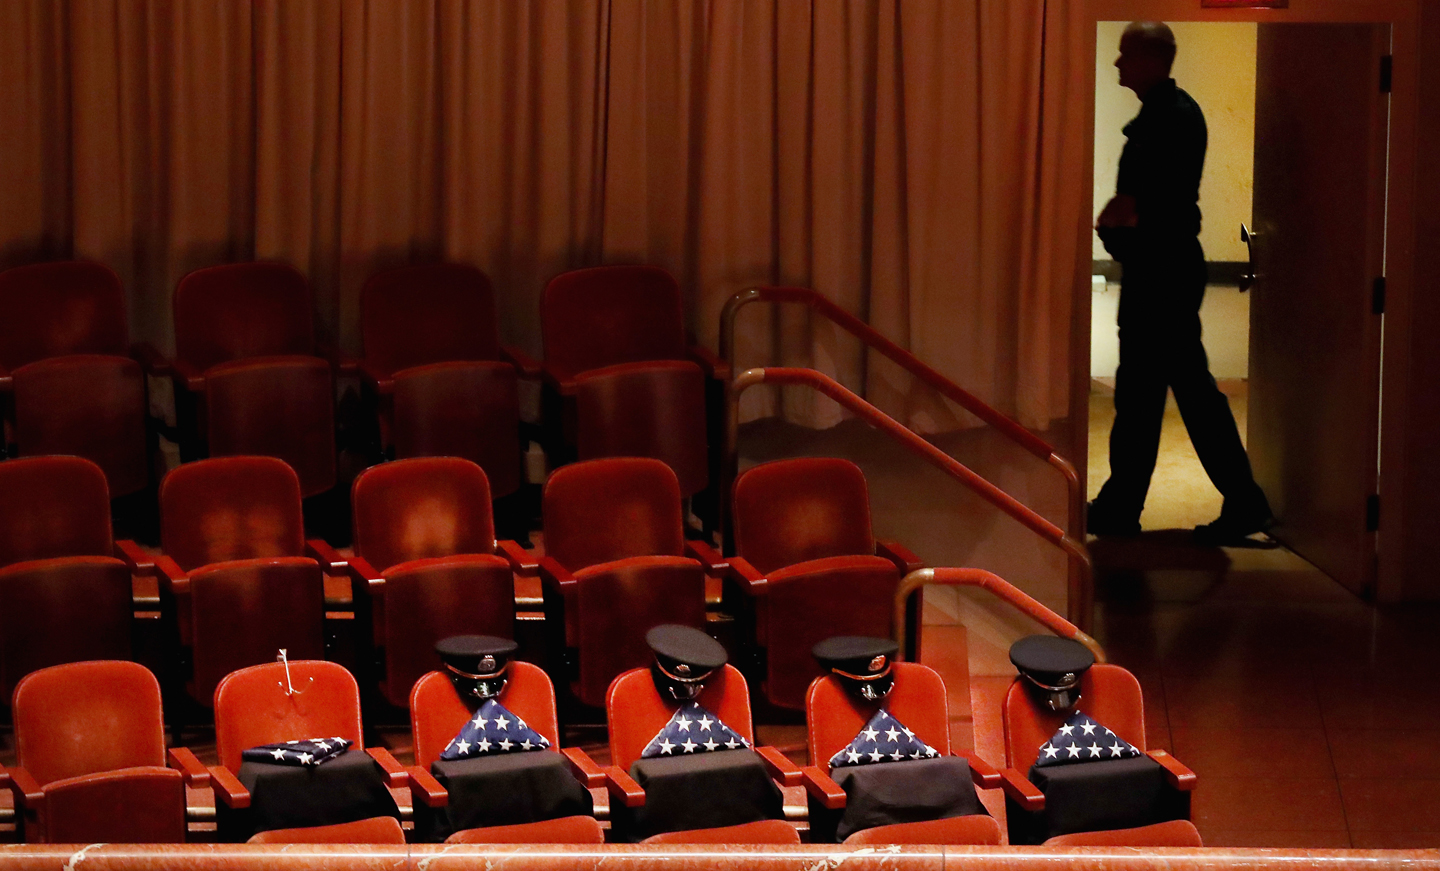 Reserved seats contain American flags and police hats during an interfaith memorial service, honoring five slain police officers, at the Morton H. Meyerson Symphony Center on July 12, 2016 in Dallas, Texas. A sniper opened fire following a Black Lives Matter march in Dallas killing five police officers and injuring 12 others.